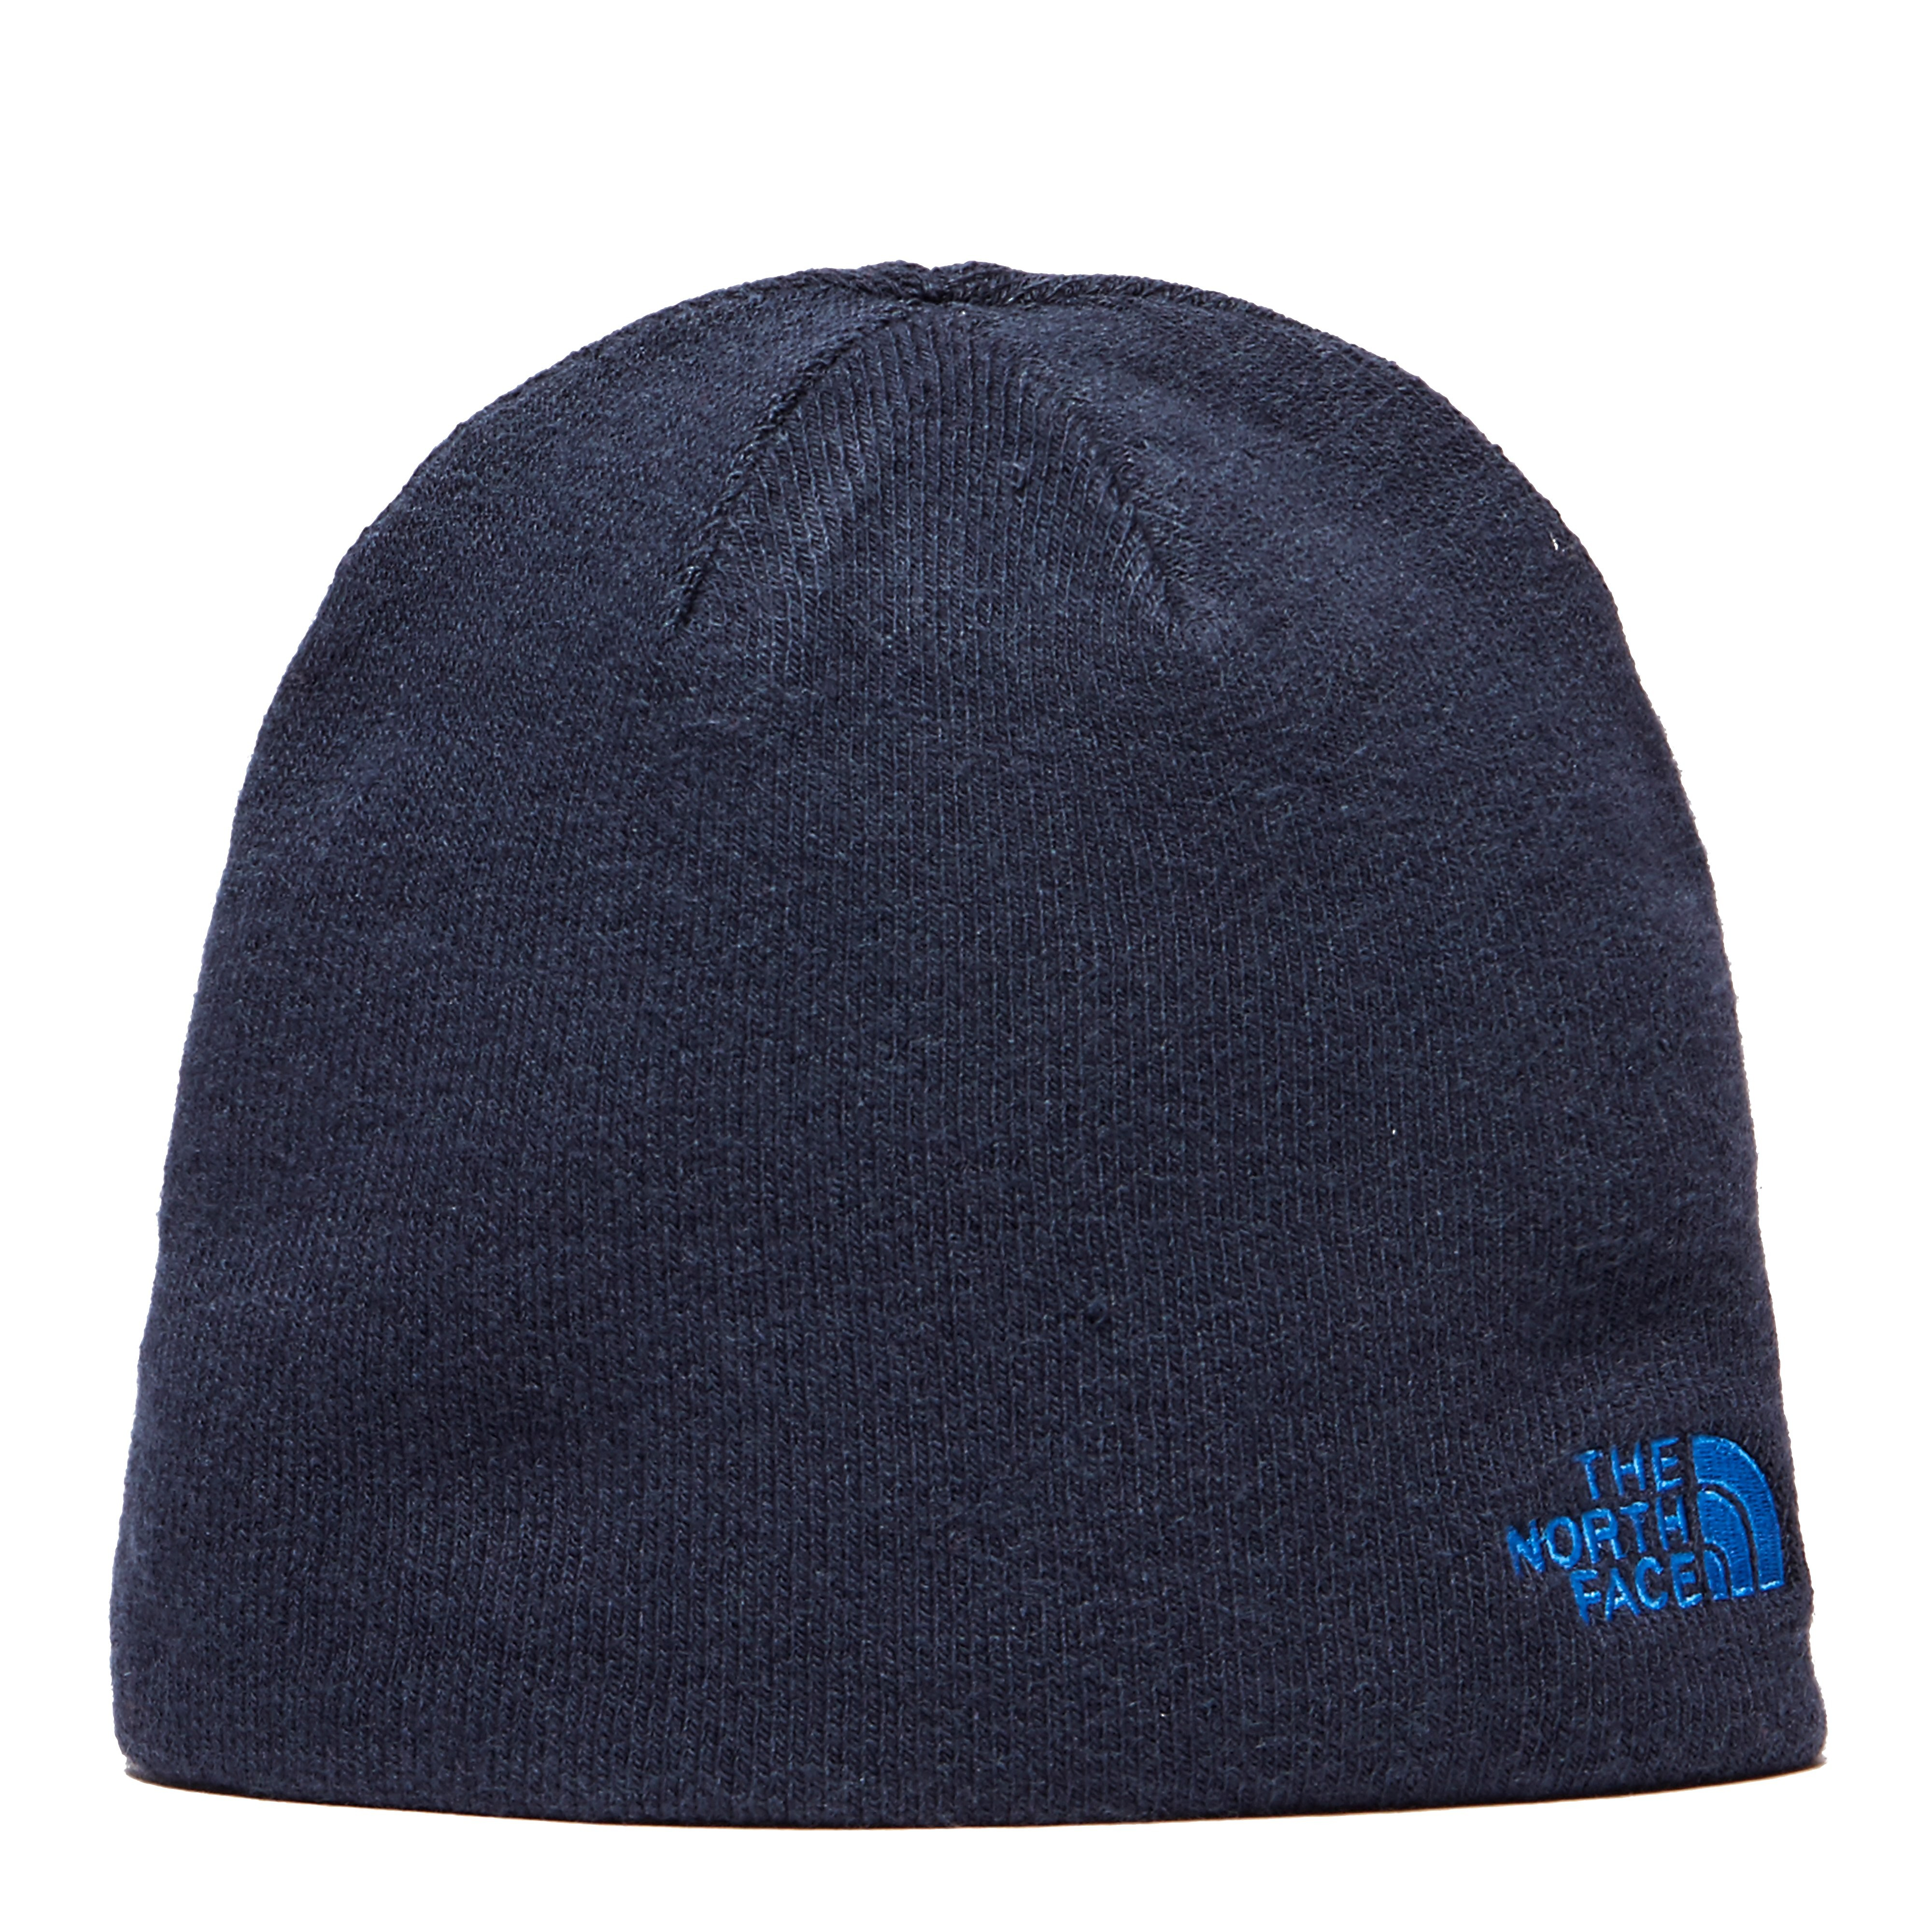 The North Face Gateway Beanie Hat